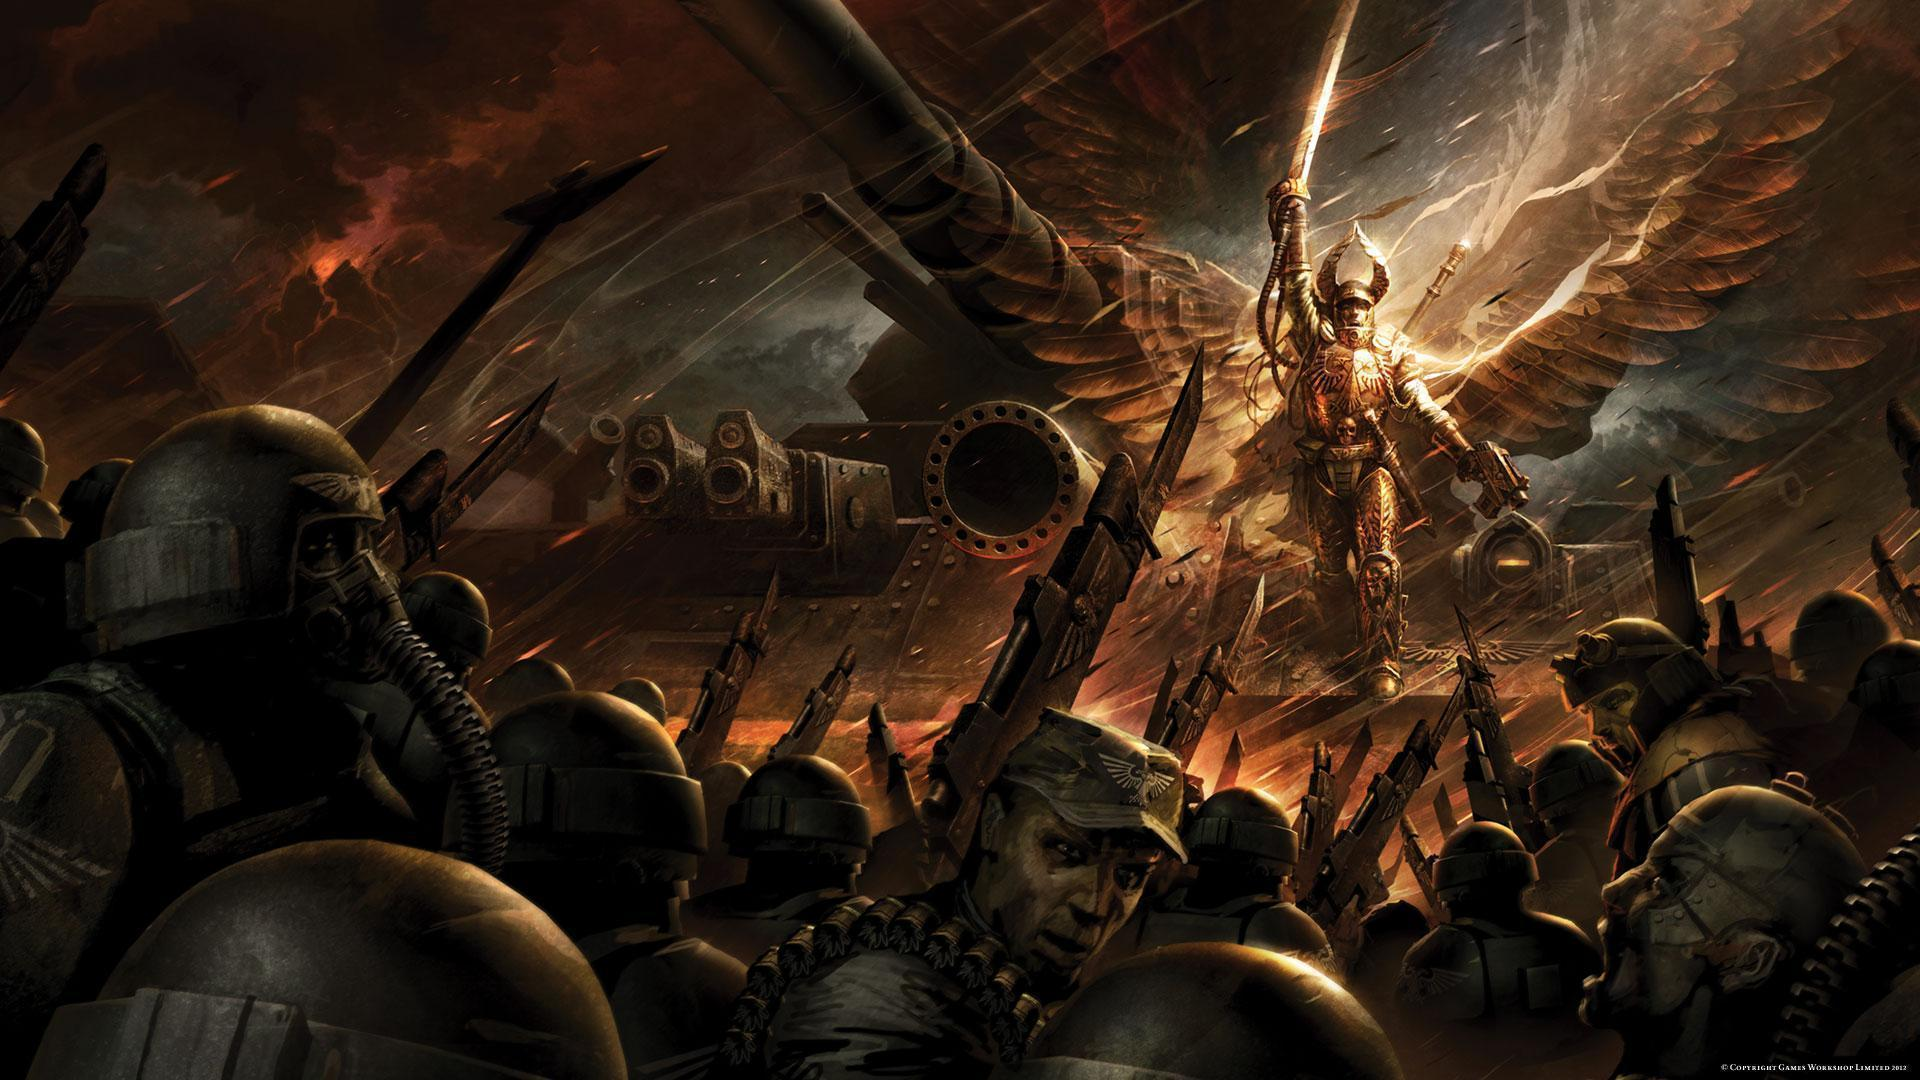 Warhammer 40k Wallpapers Wallpaper Cave